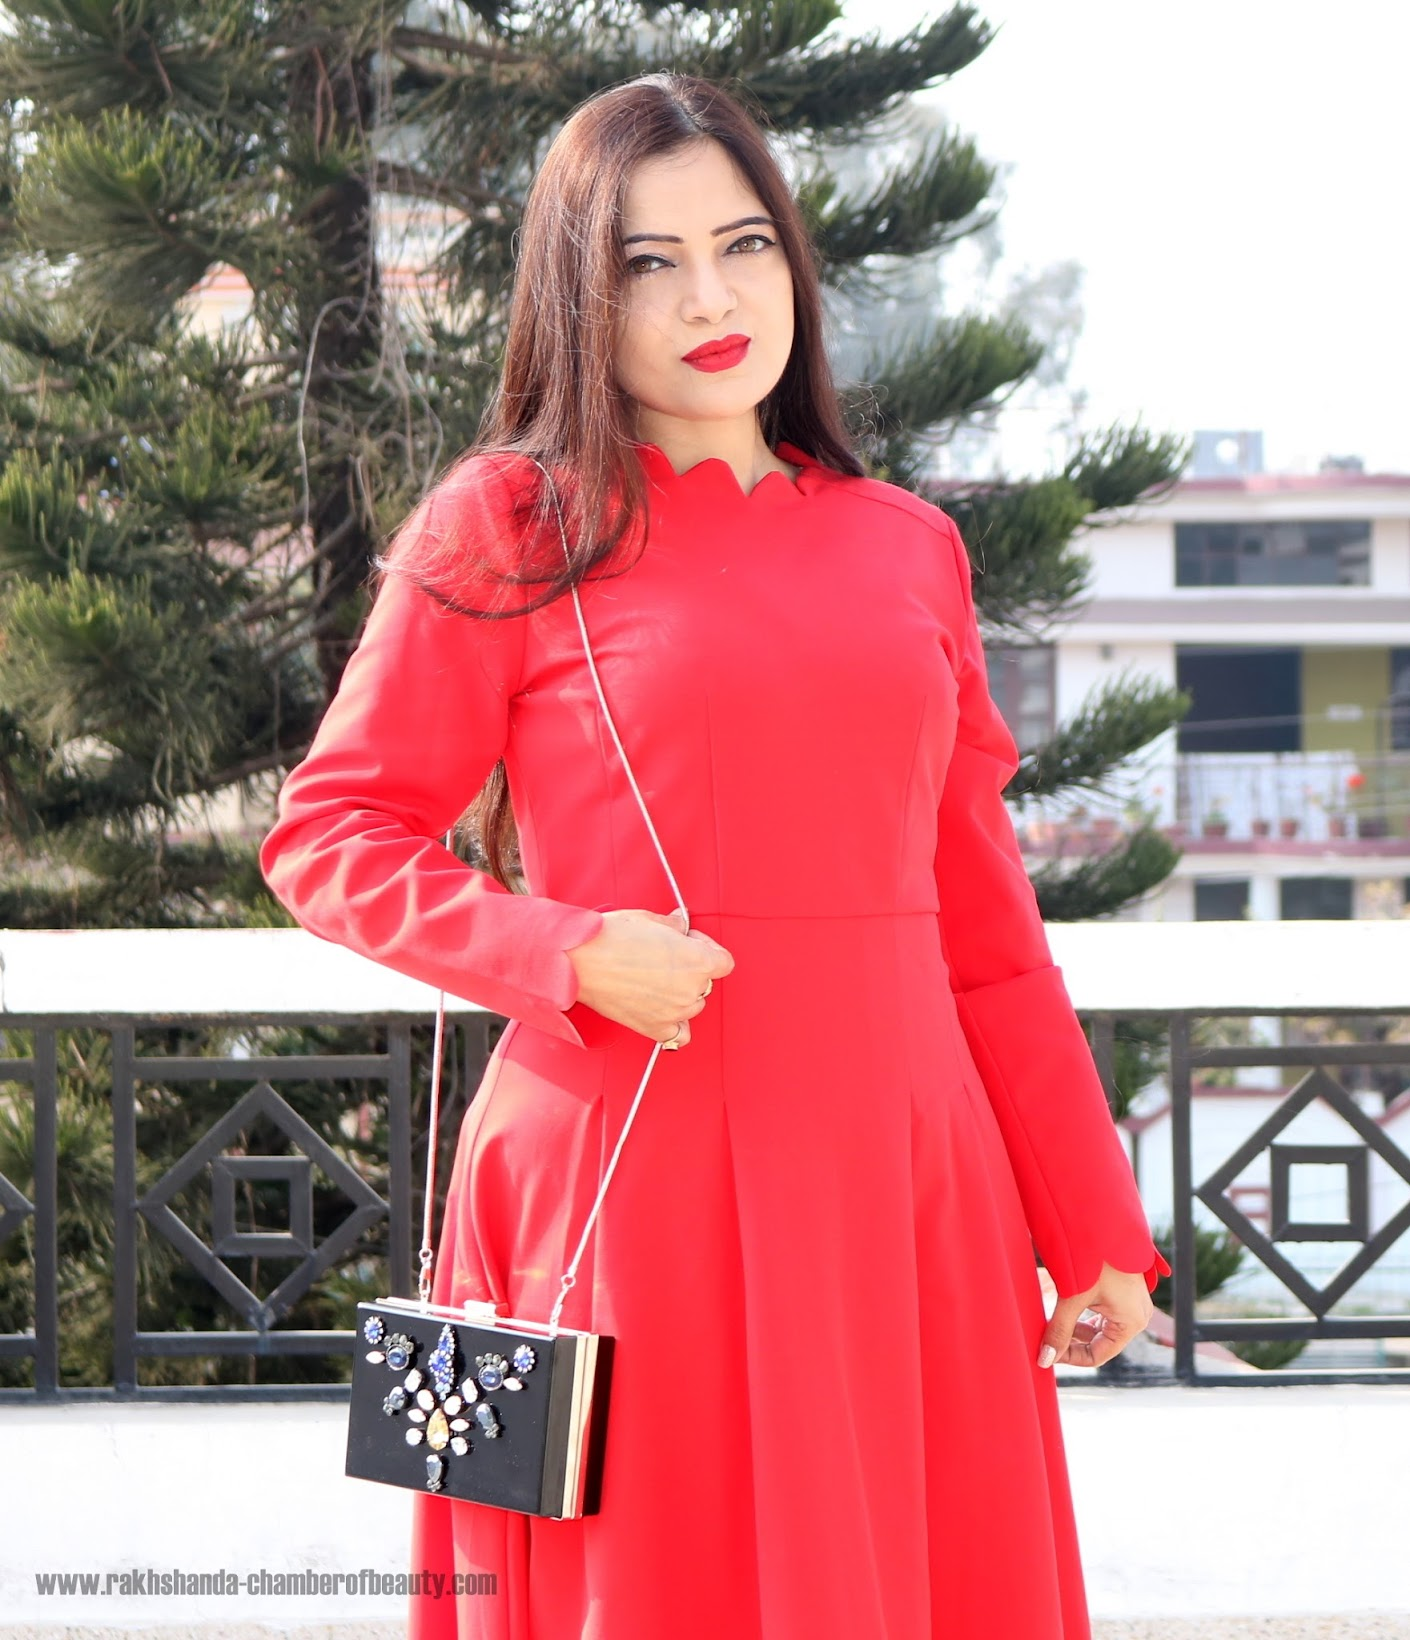 Dainty Jewell's Red Scalloped Dress, Red vintage midi dress, How to wear a midi dress, Indian fashion blogger